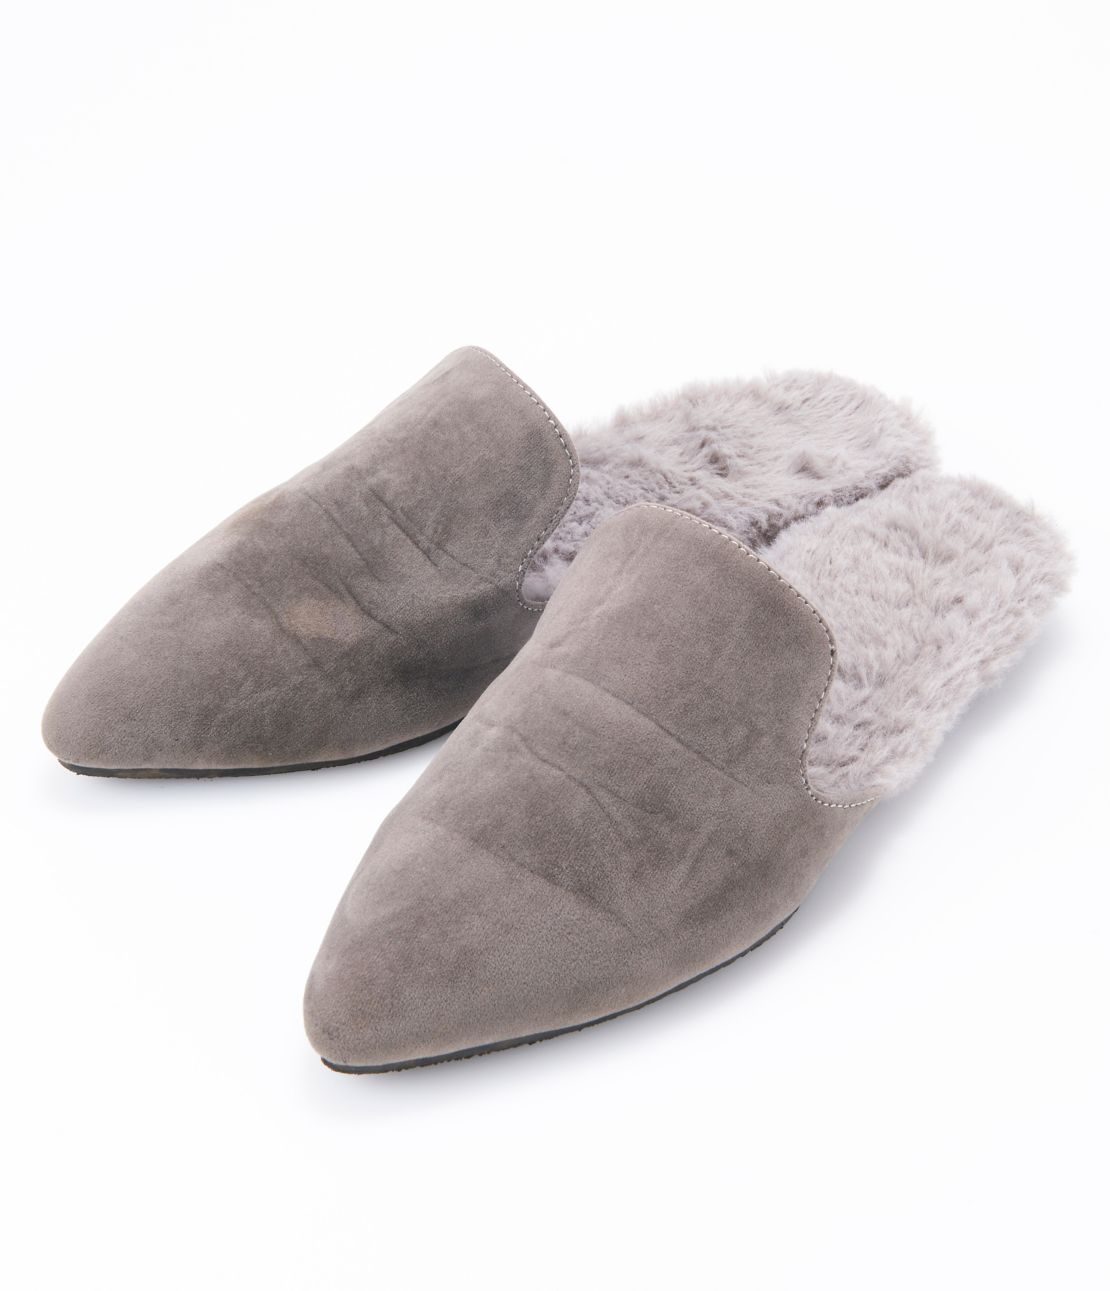 Eco-fur insole sandals